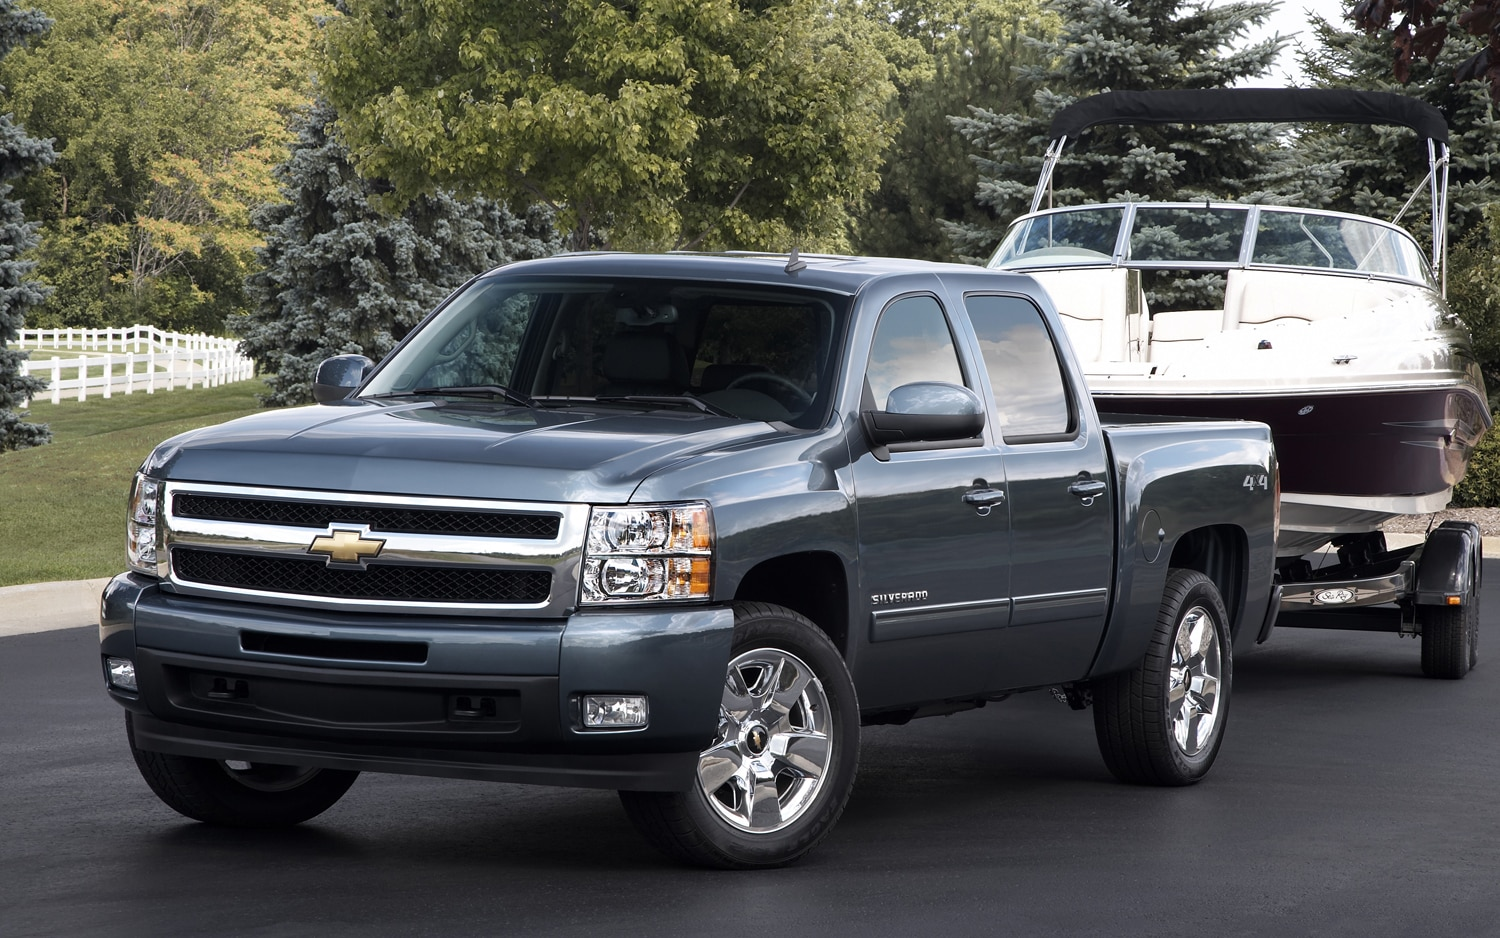 2011 Chevrolet Silverado Ltz Front Three Quarter11